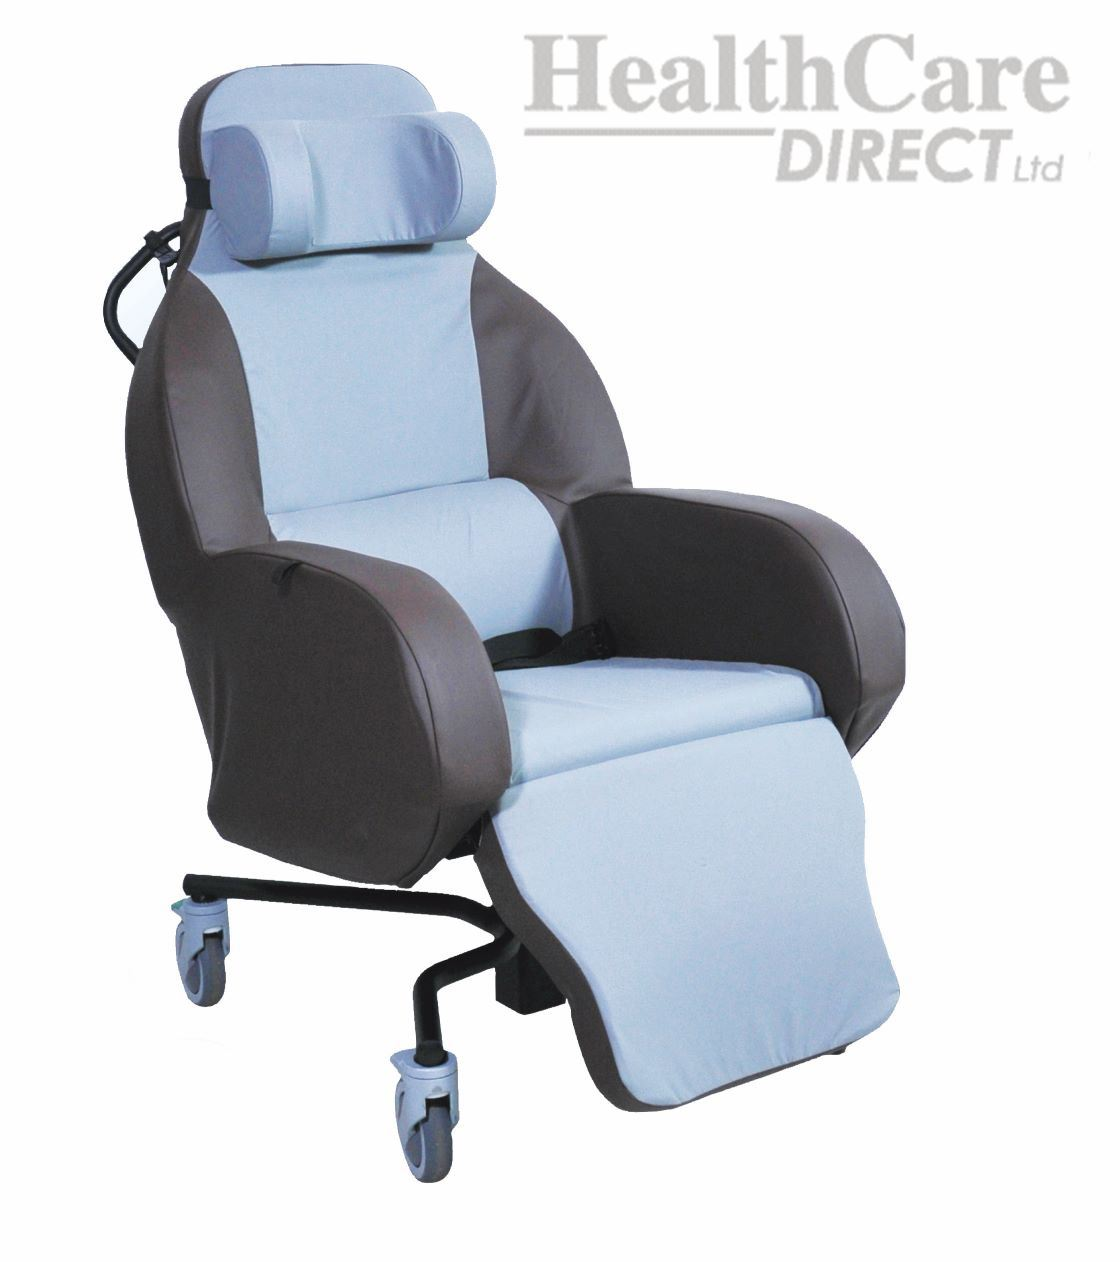 Picture for category Integra - Shell Seat For Nursing Homes